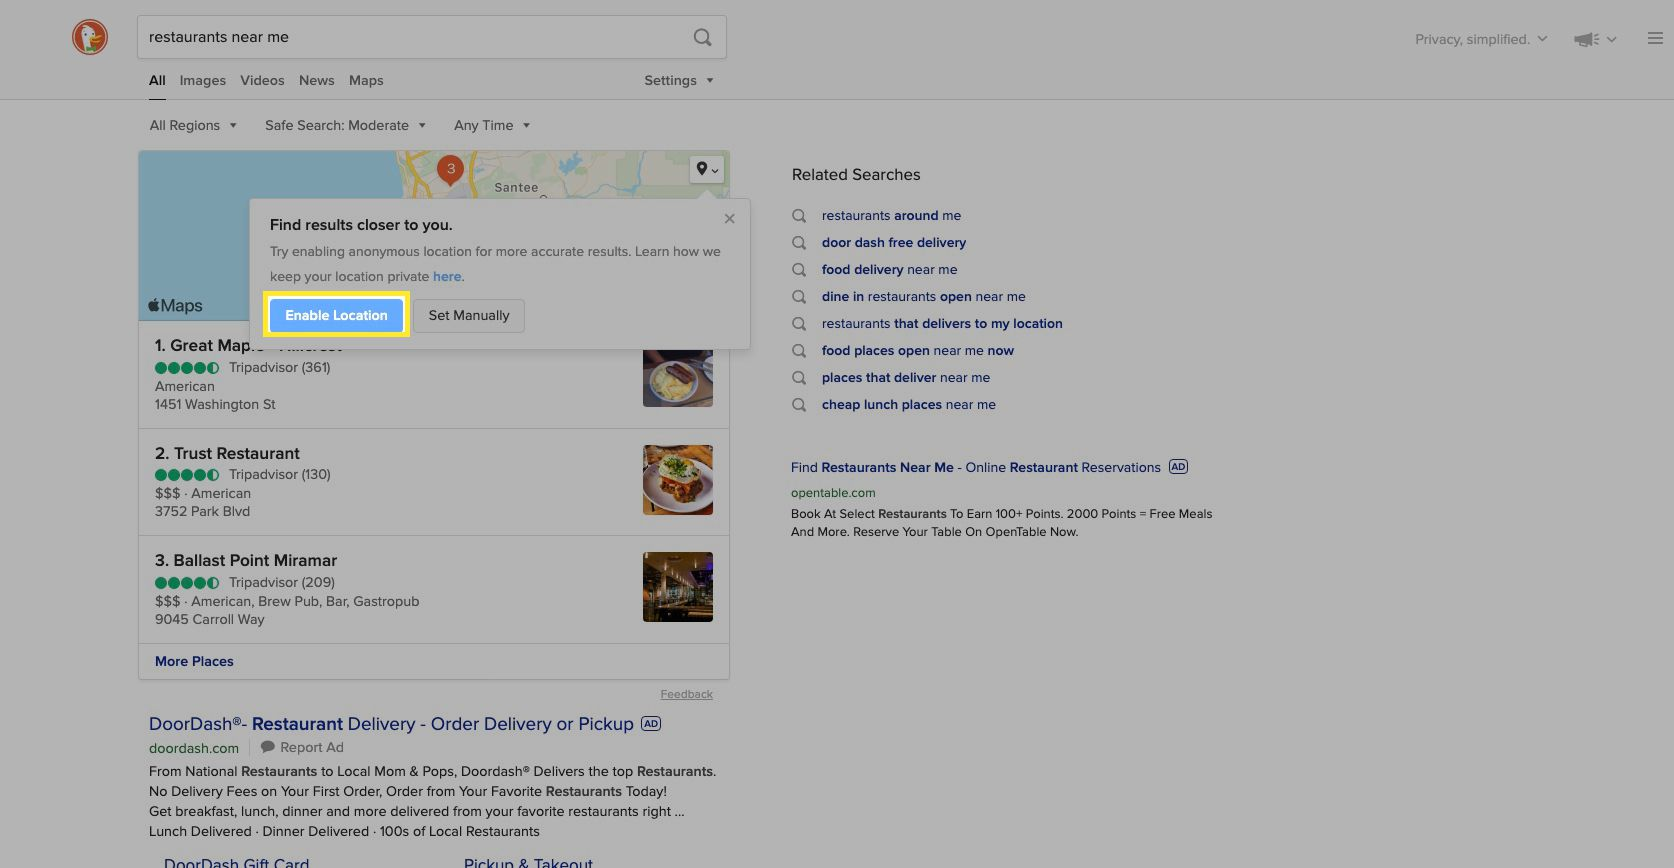 Select Enable Location, which is anonymous, to get more accurate search results.